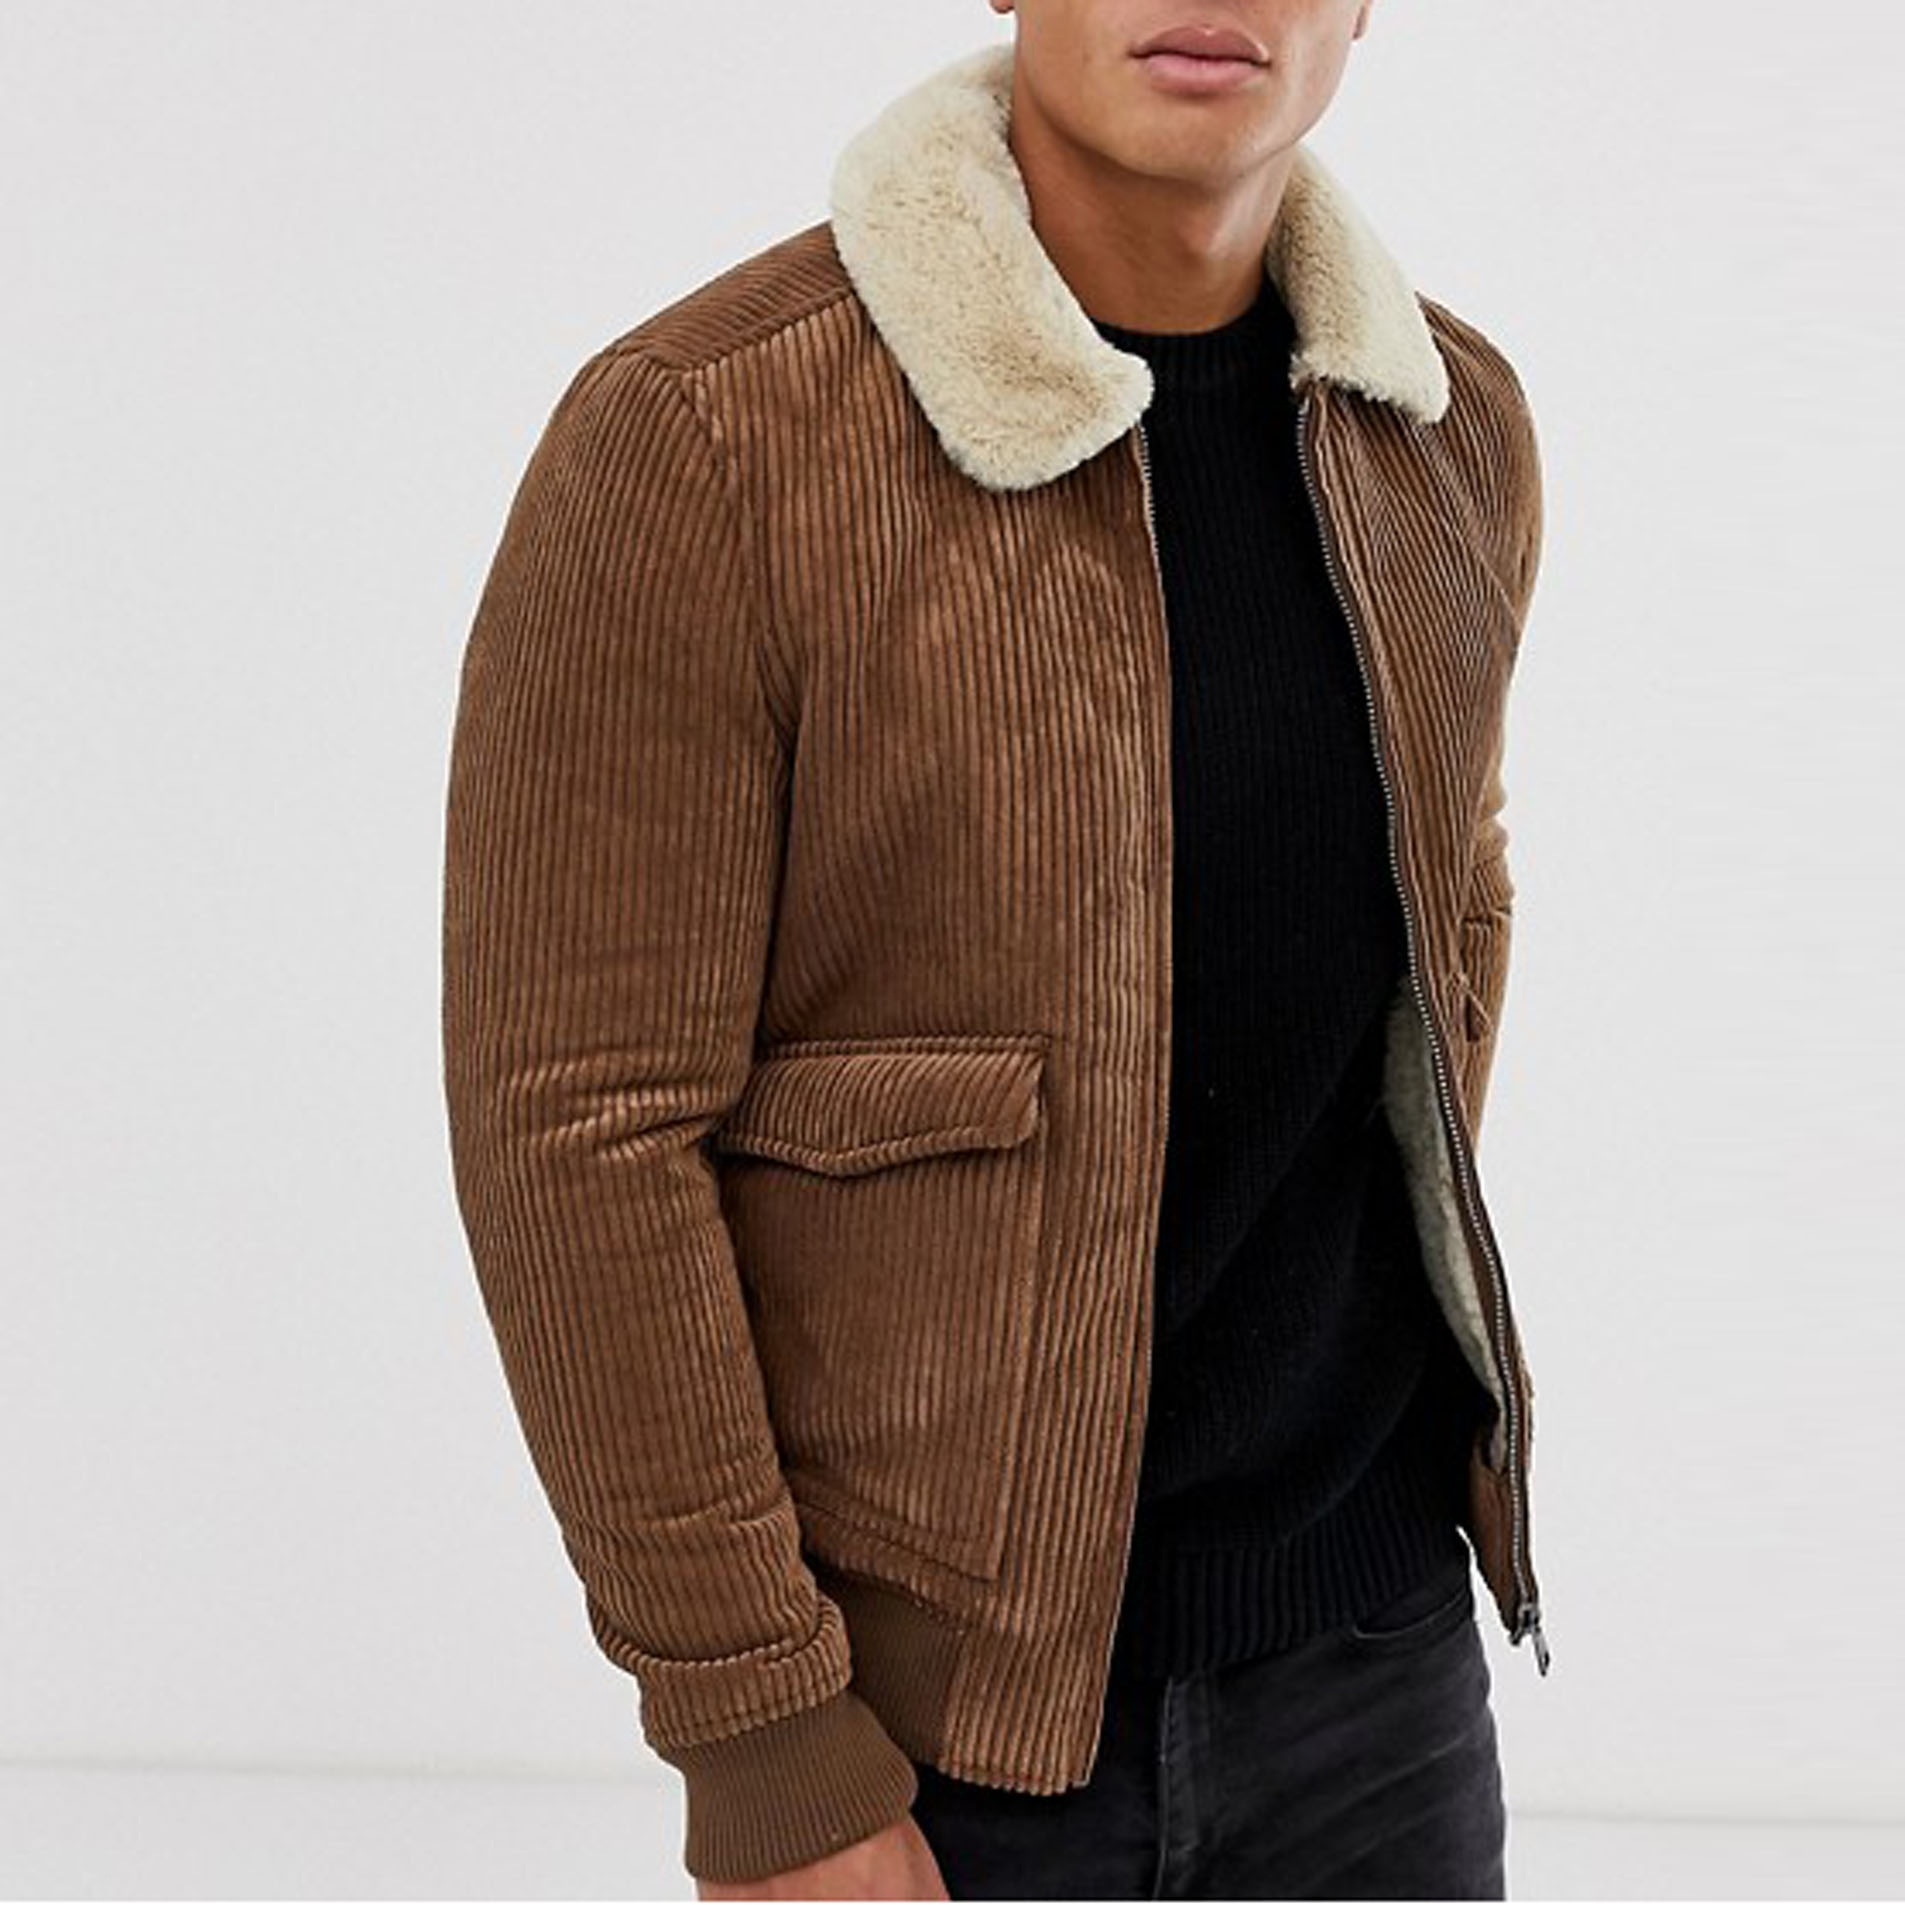 Mens winter corduroy sherpa jacket with faux fur lining and collar